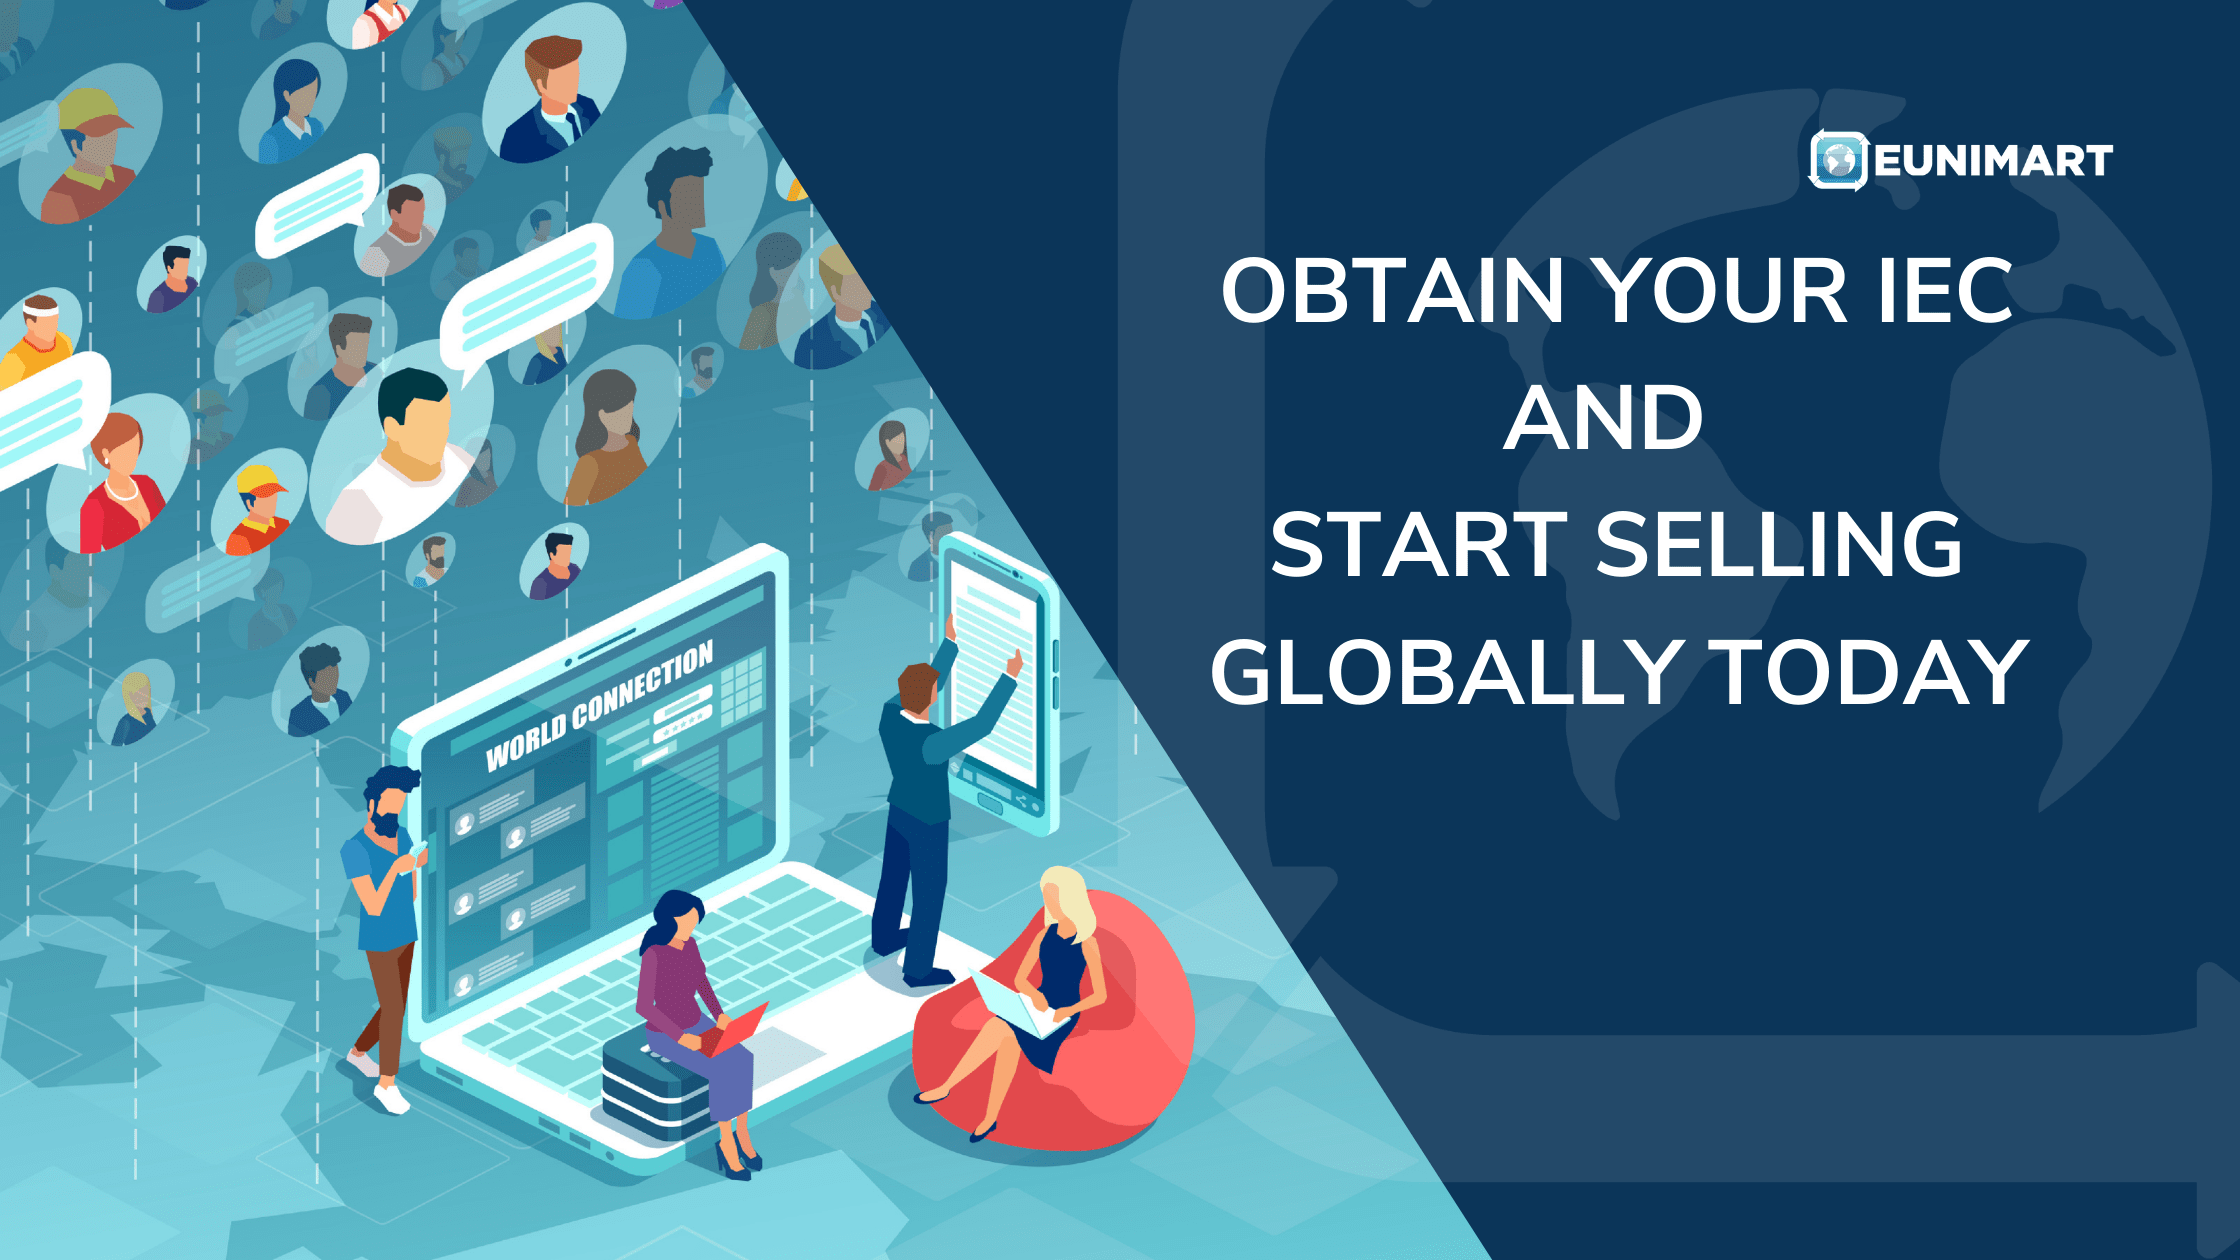 Obtain your IEC and start selling Globally today